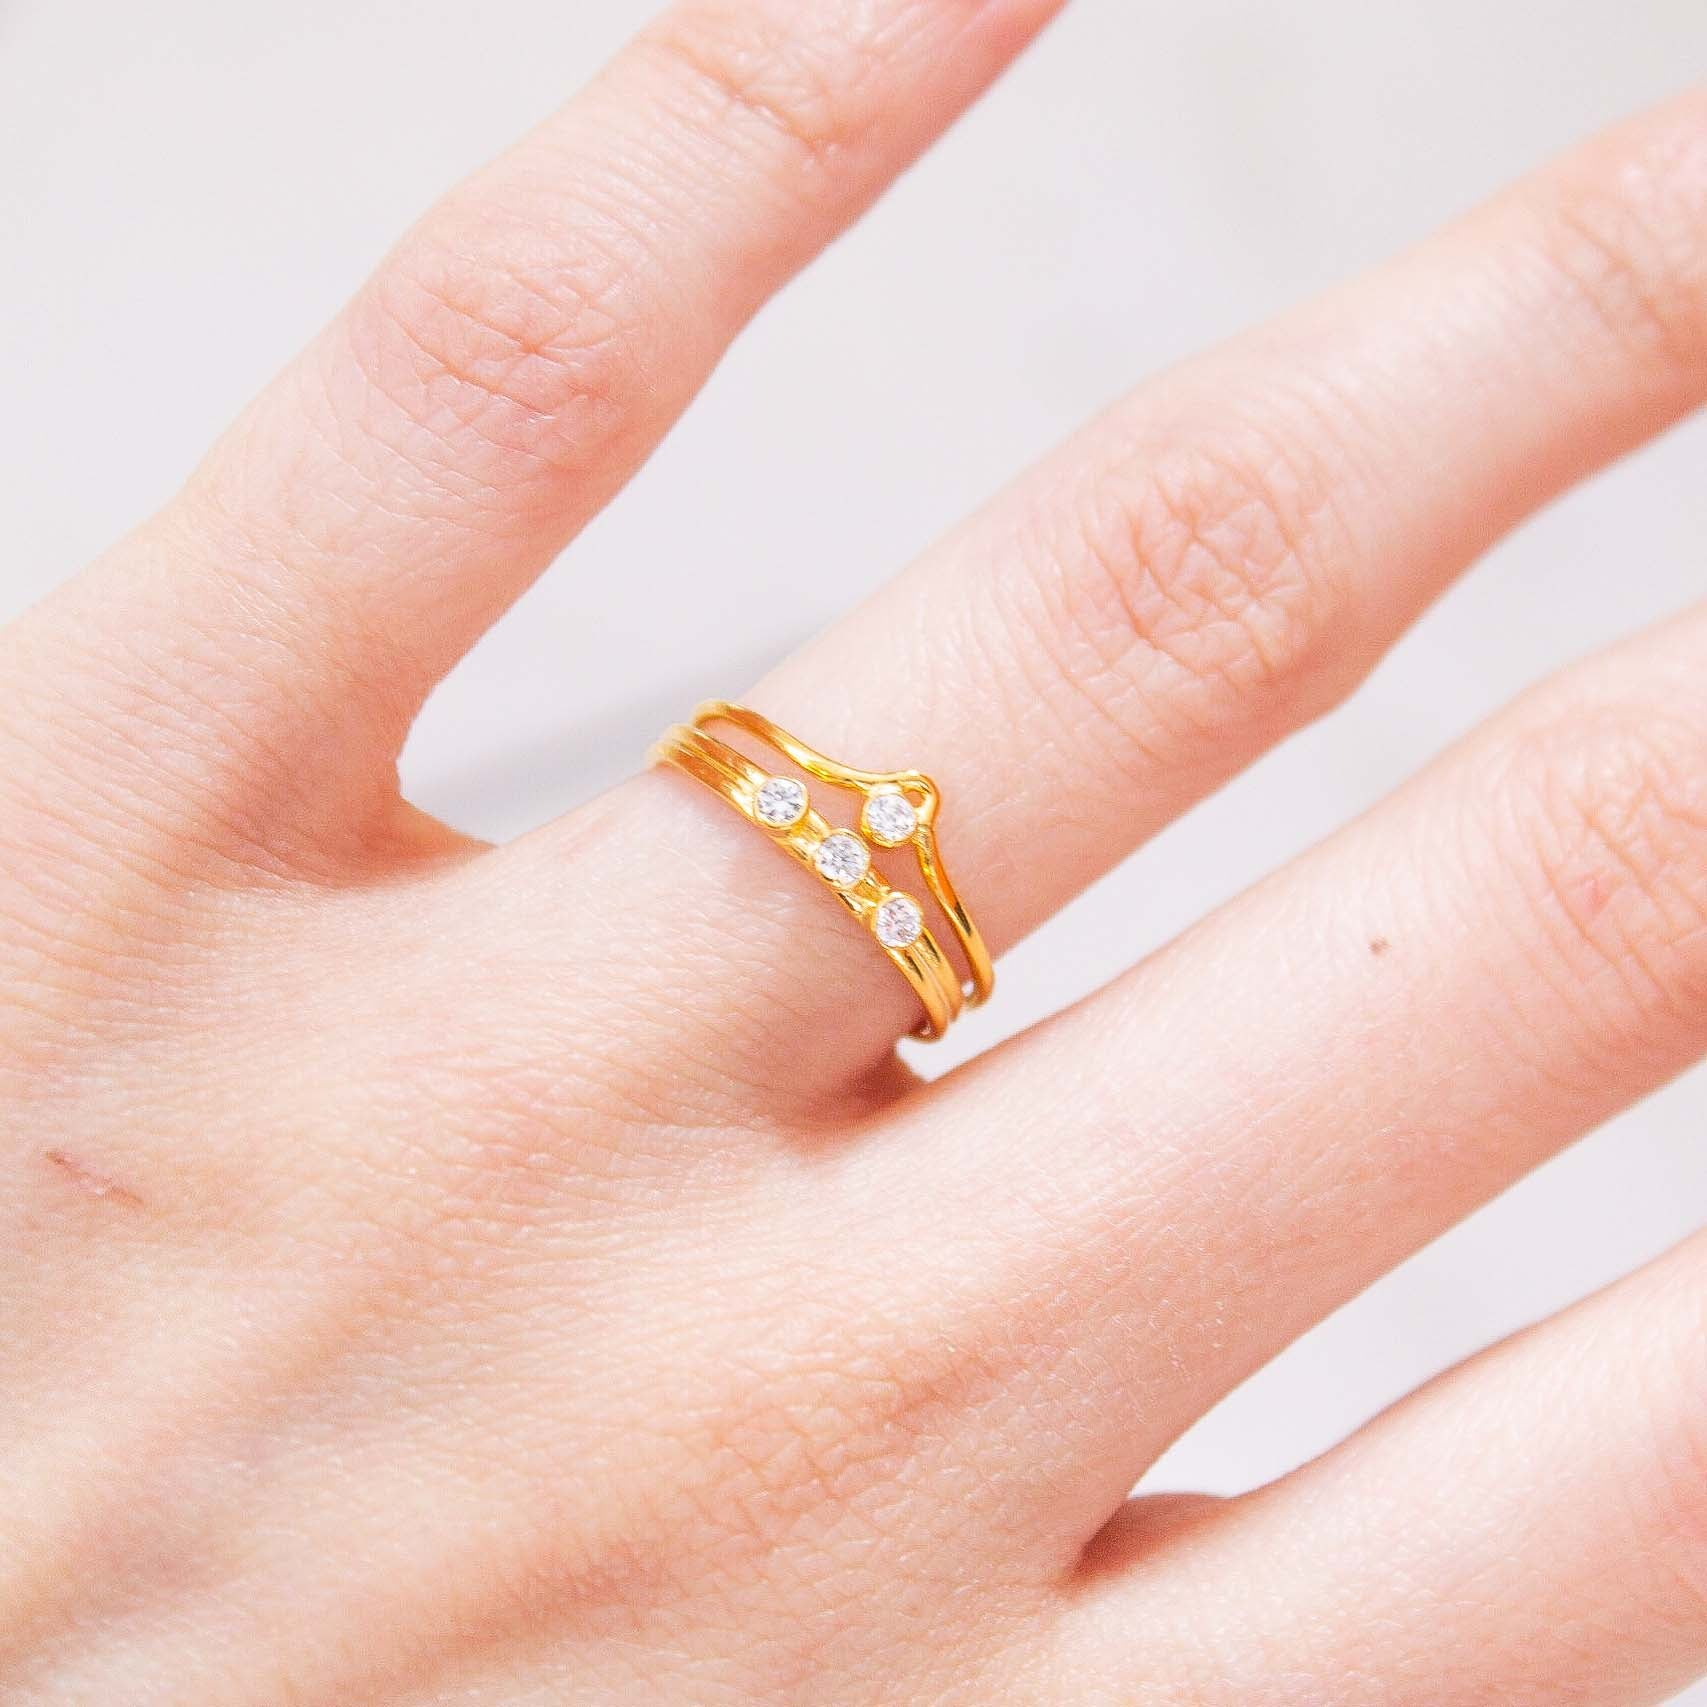 pico_jewellery_vermeil_stacking_point_CZdiamond_ring